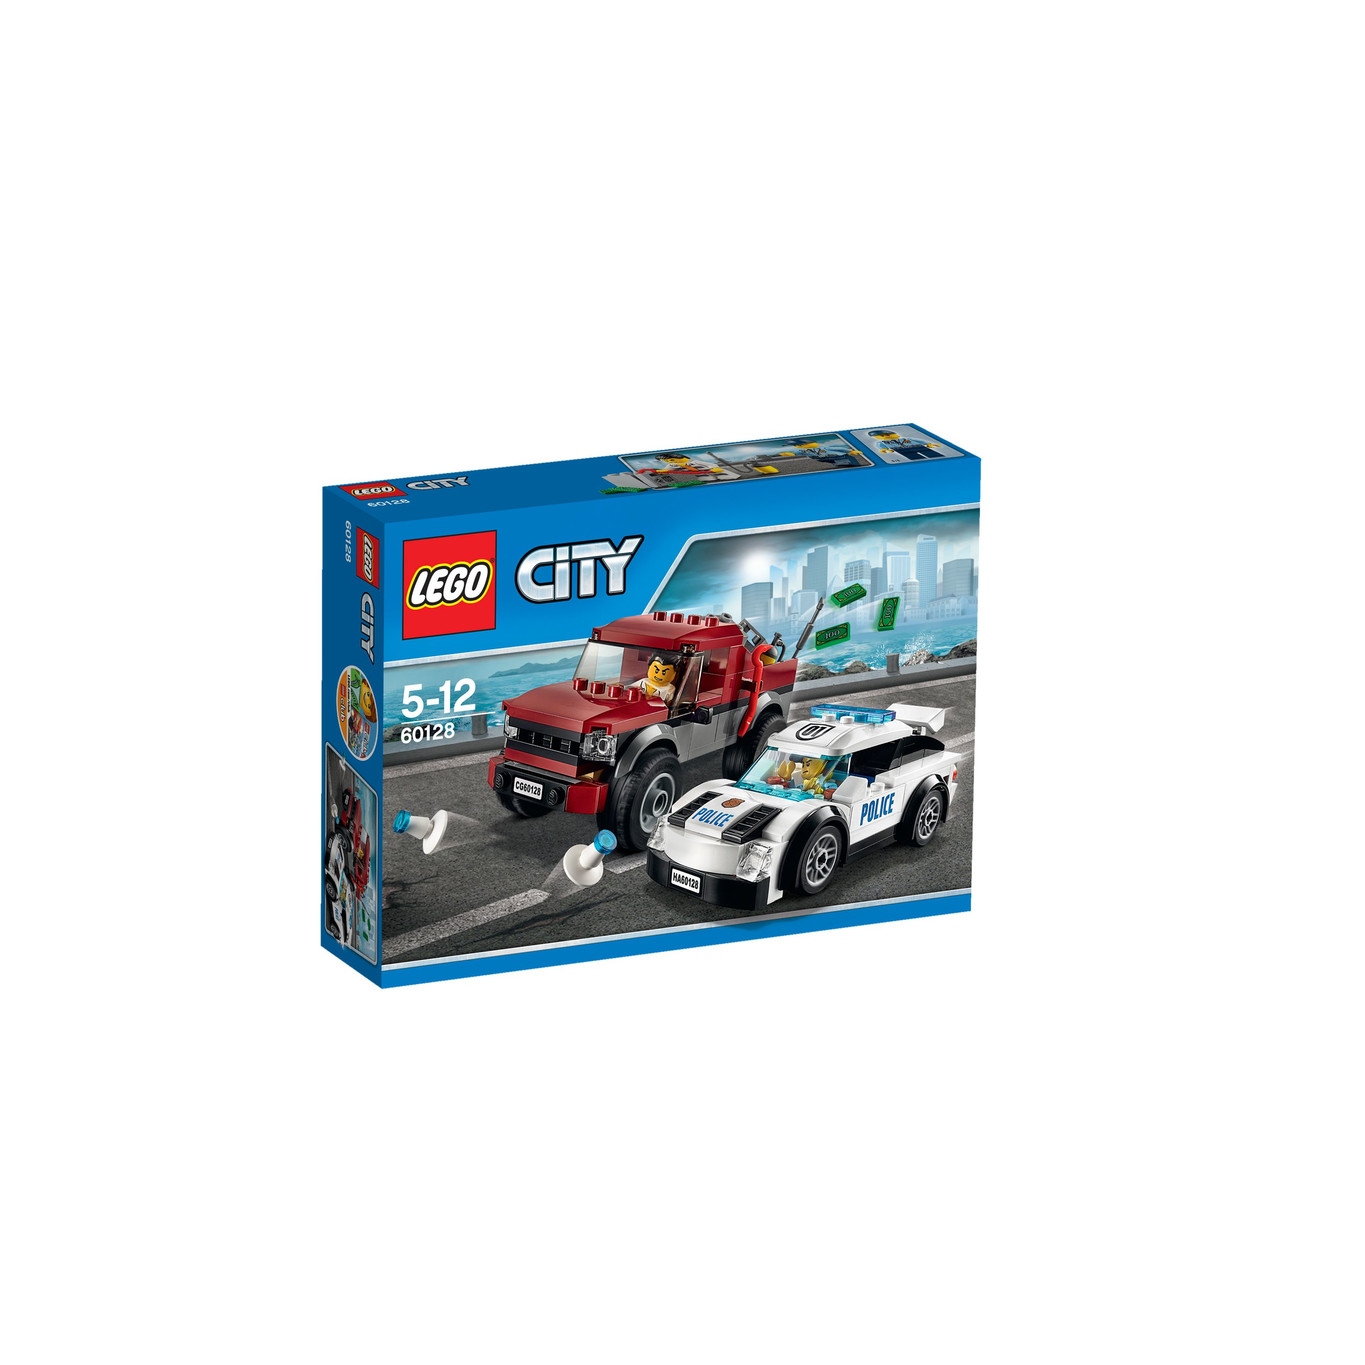 Lego City Police Pursuit Lego Near Me Nearst Find And Buy